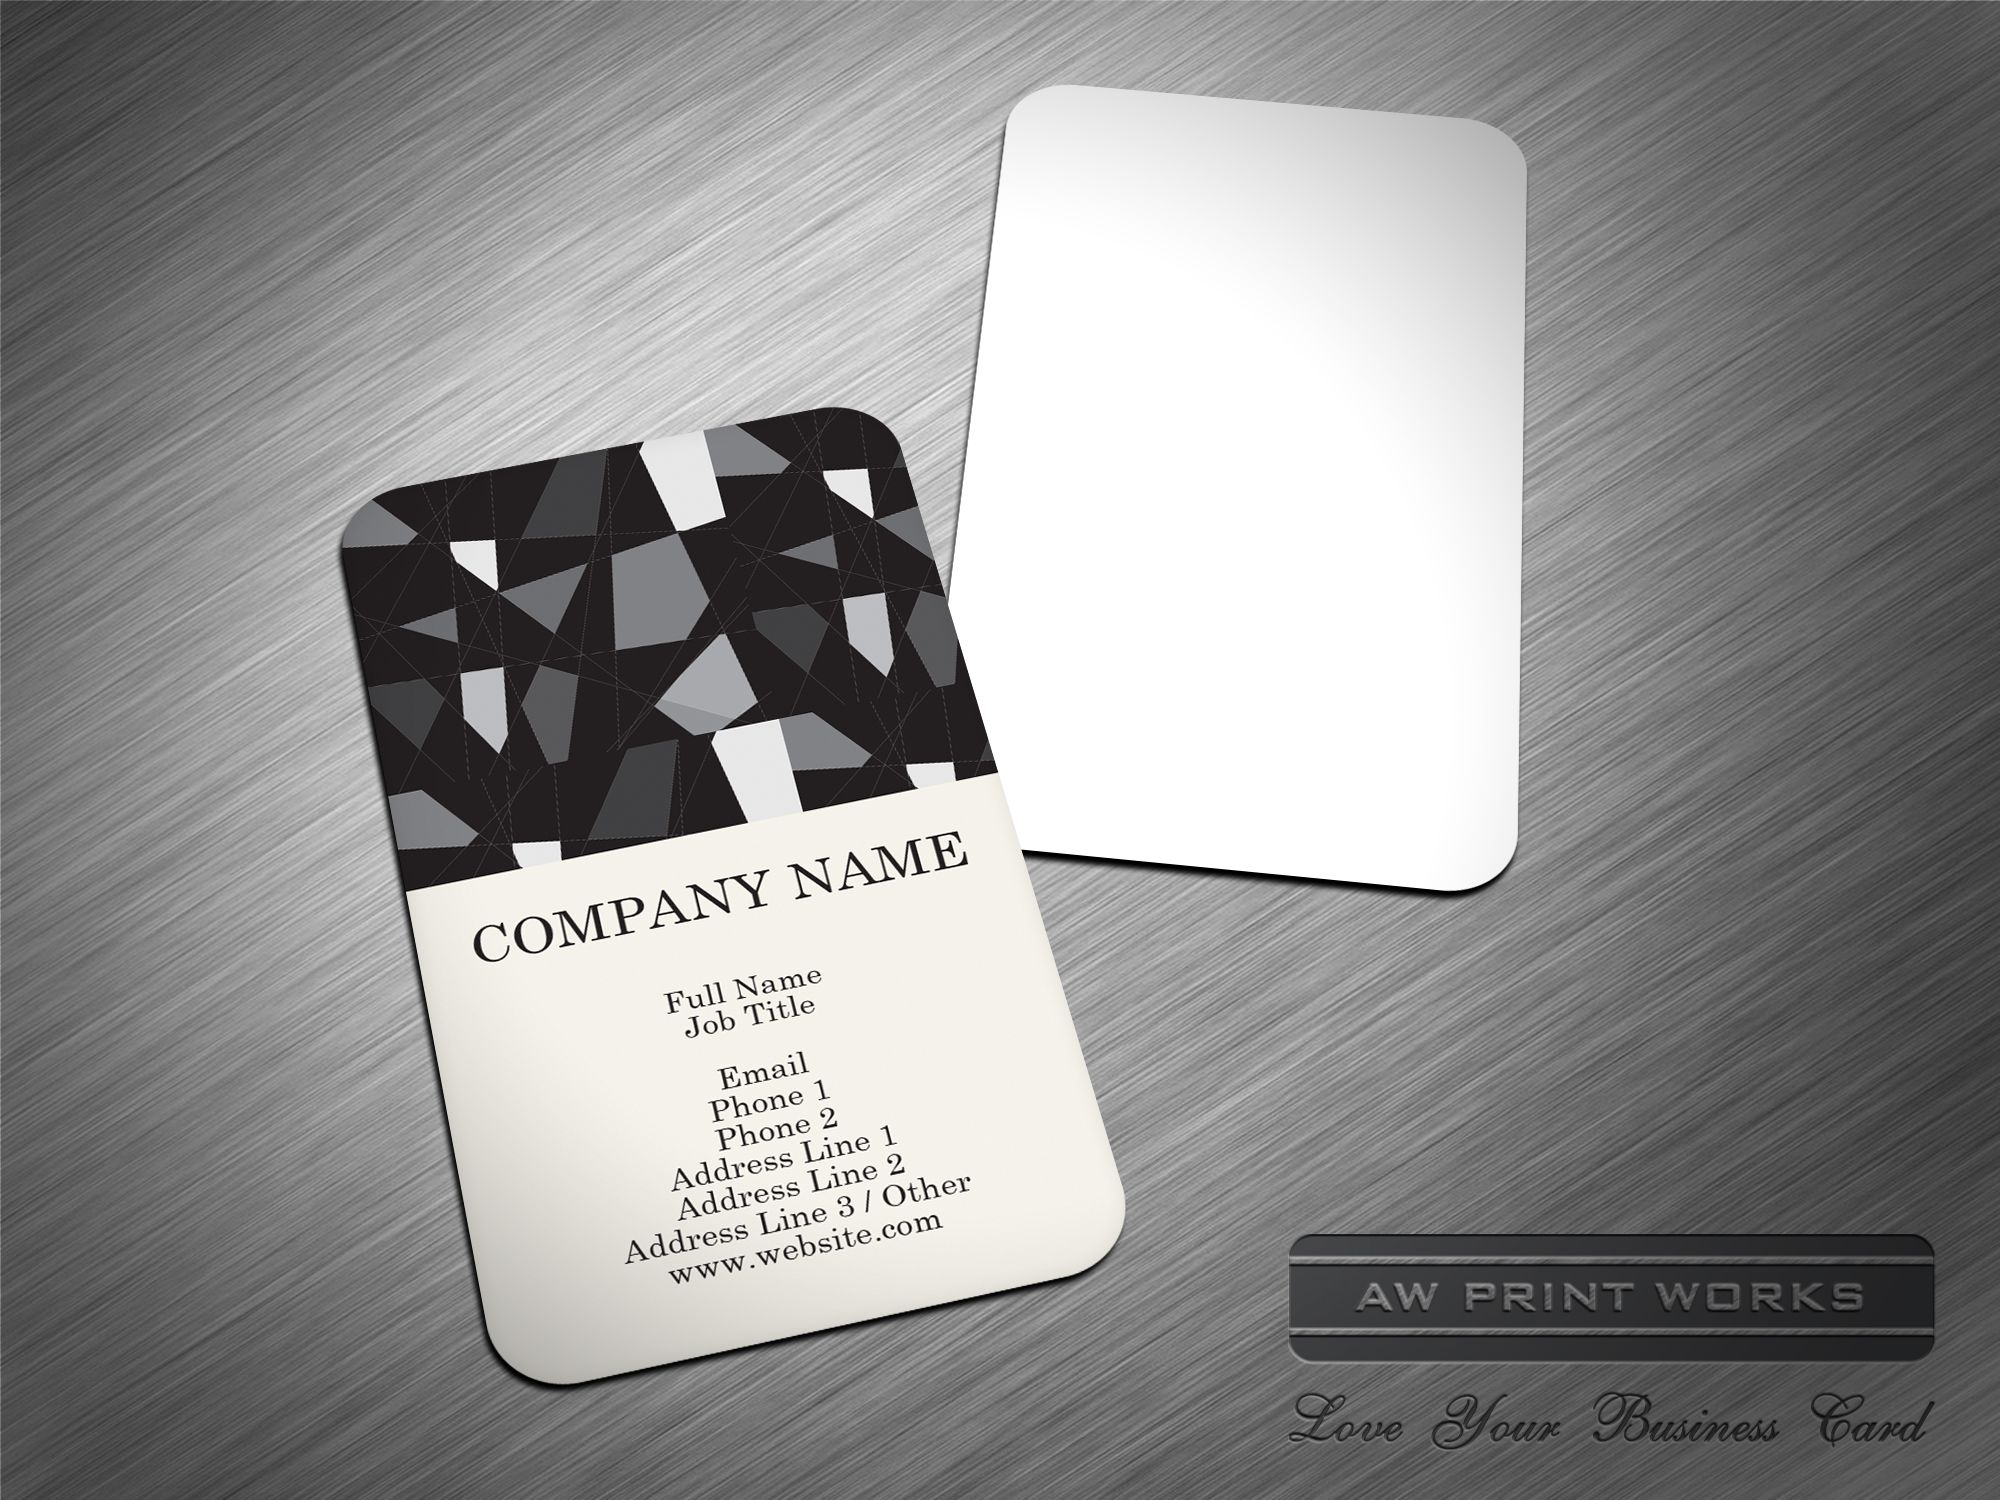 Universal Business Card Template 580 Www Awprintworks Com Love